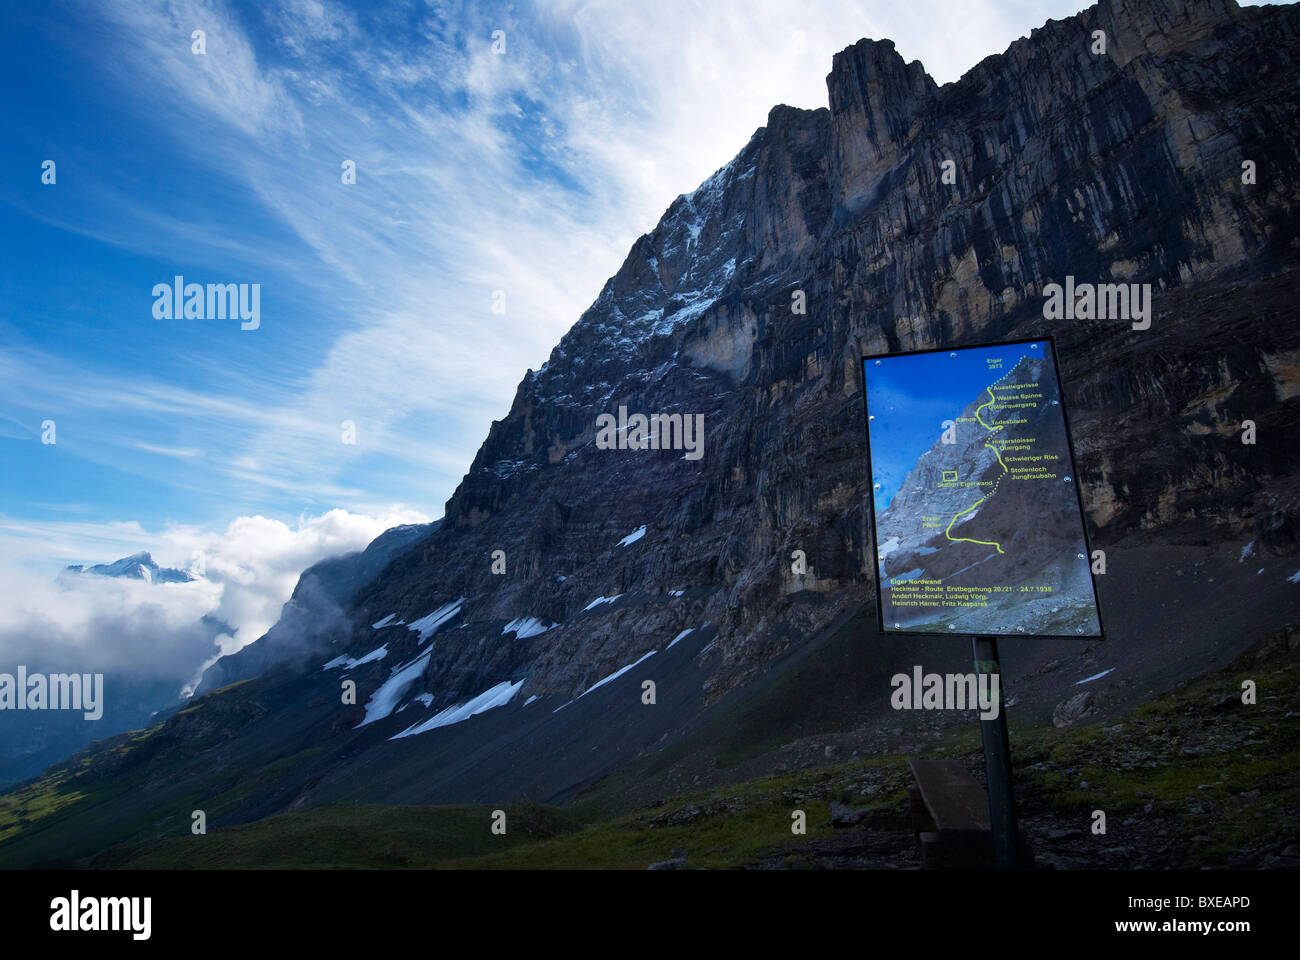 View of the Eiger North Face and sign showing the route of the first ascent, Bernese Oberland, Switzerland - Stock Image